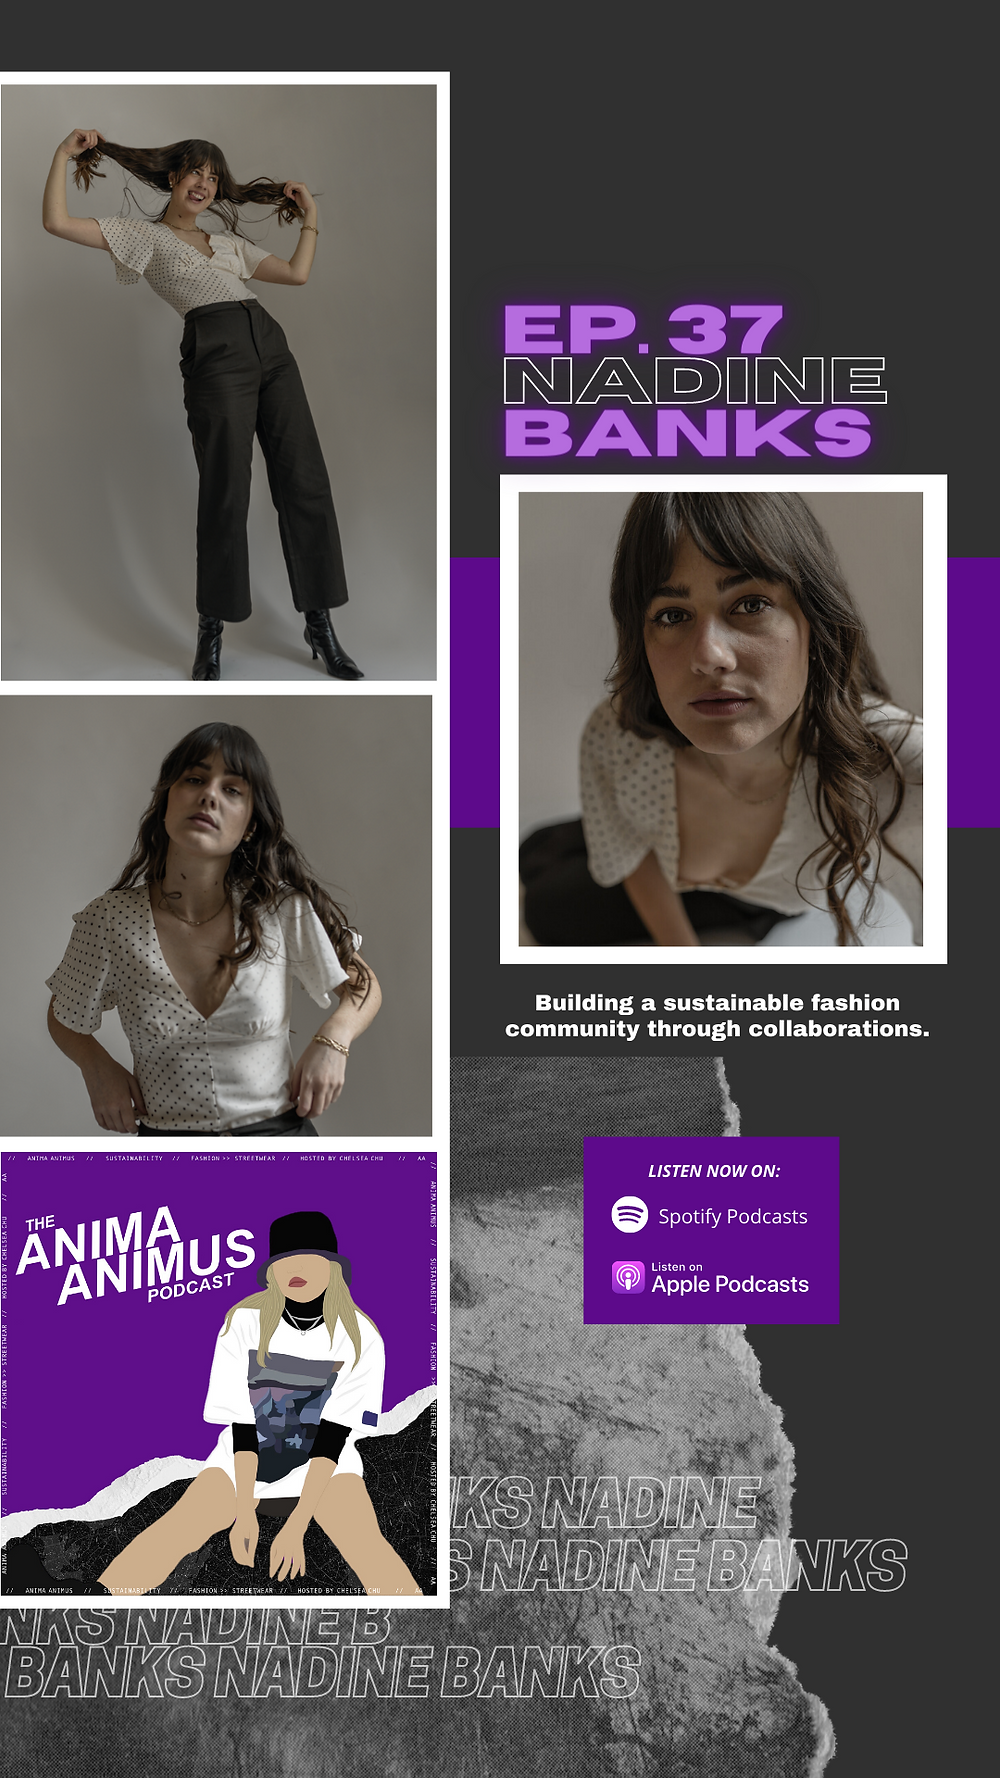 A fashion sustainability podcast by The ANIMA ANIMUS Podcast, featuring Nadine Banks on collaboration and building a sustainable fashion community for Re_Archive.